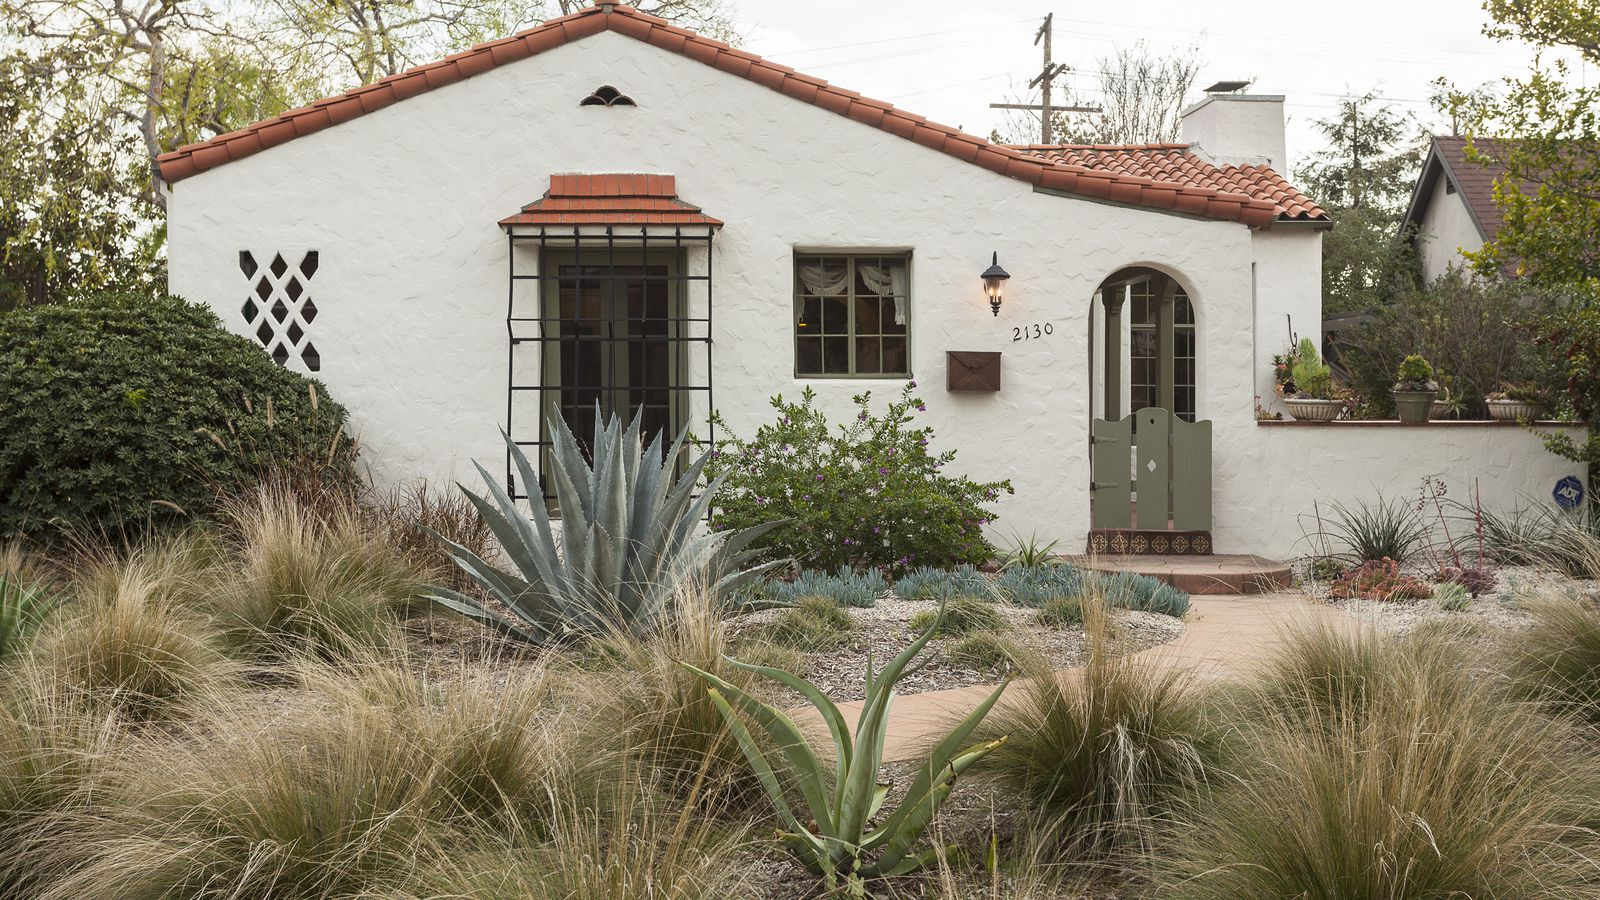 Bidding For Adorable Spanish Style In Pasadena Will Start At 749k Curbed La